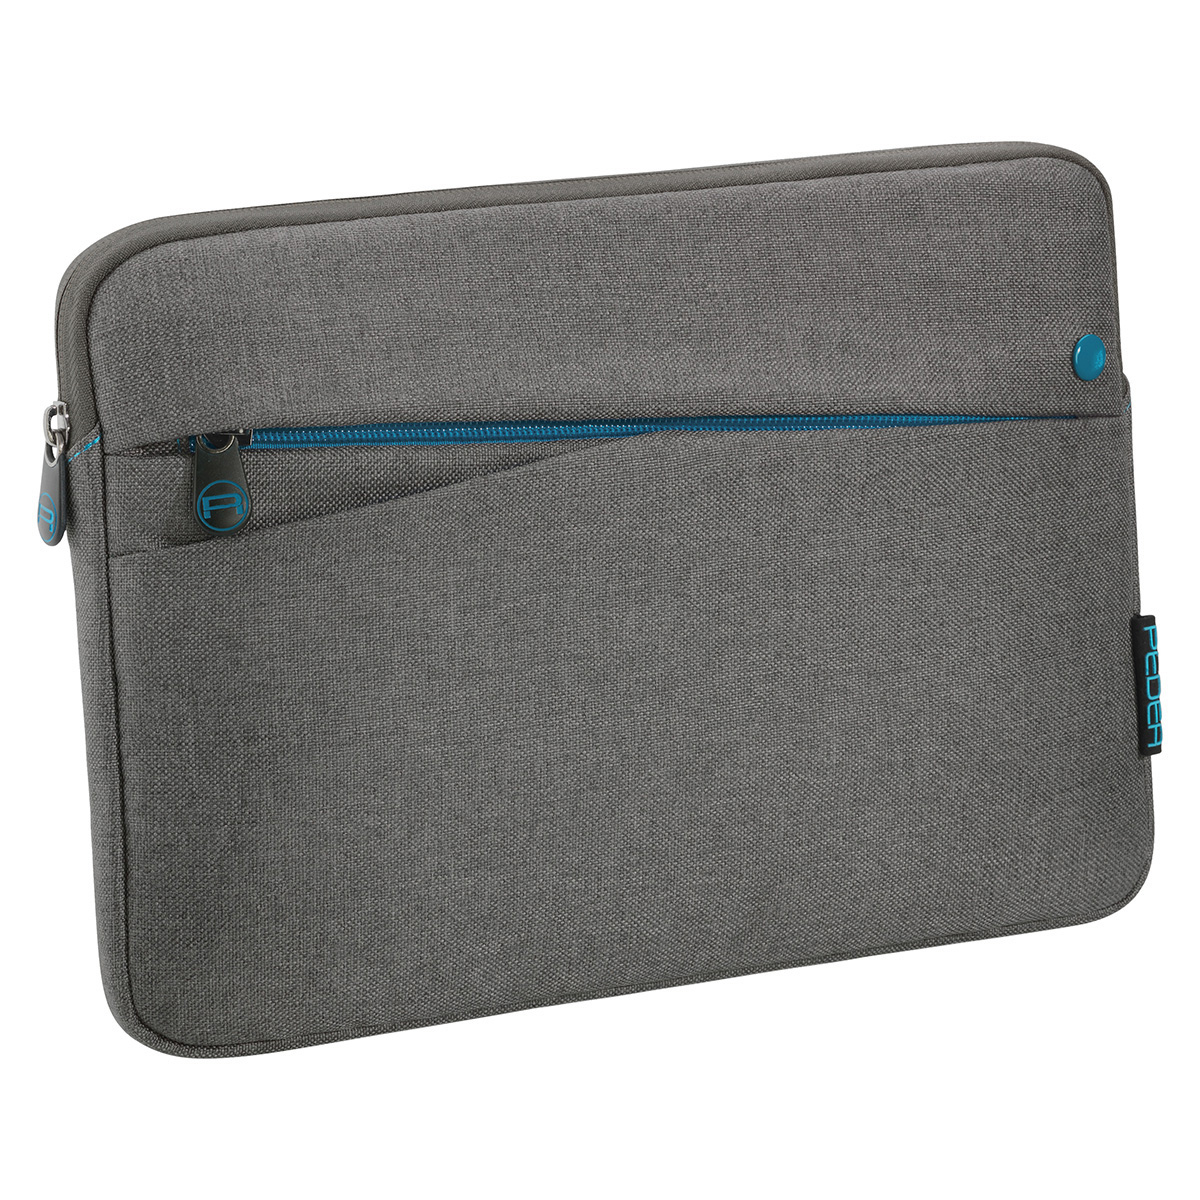 PEDEA Fashion Tablet Case Sleeve 10.1 inch, grey